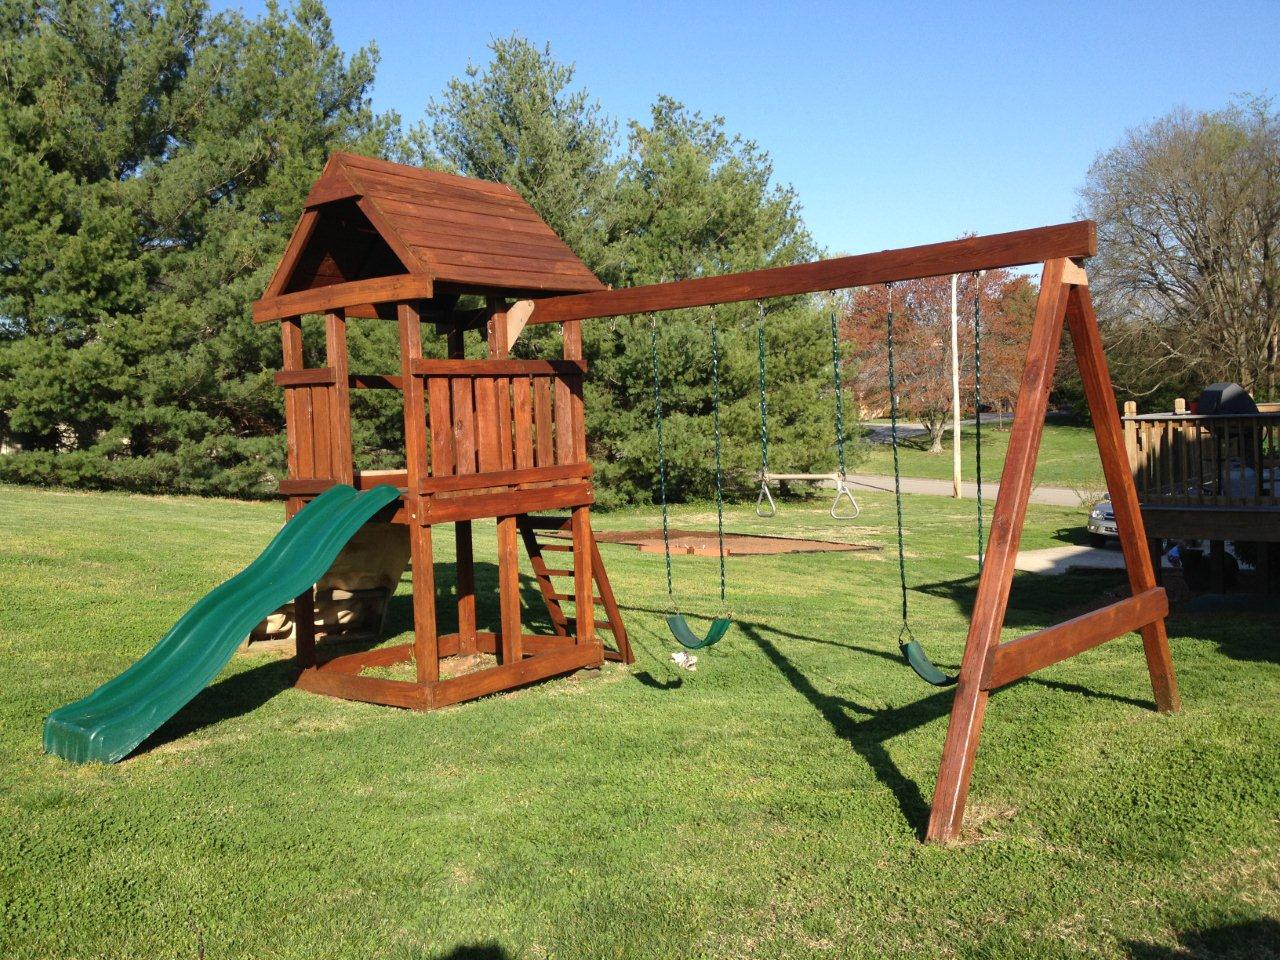 Playset after staining with Lifeline Ultra 7 Bronze 2